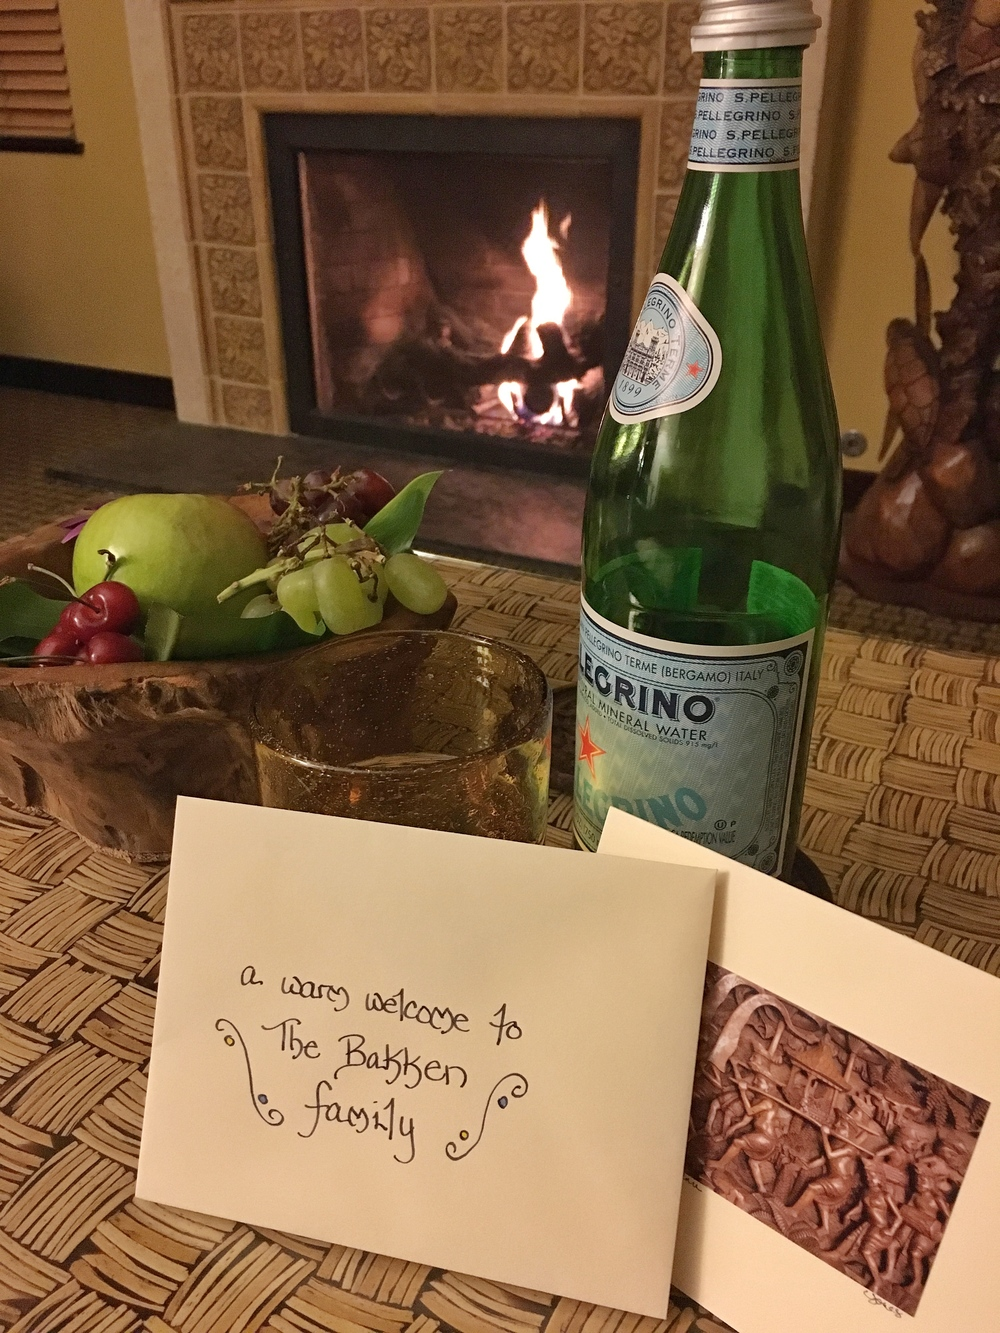 A welcome card and fresh fruit for us upon arrival.